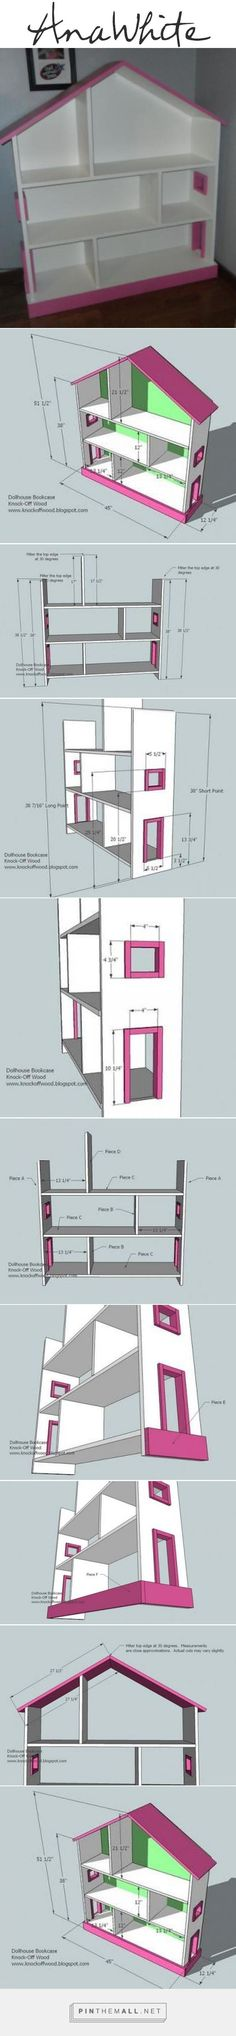 Ana White | Build a Dollhouse Bookcase | Free and Easy DIY Project and Furniture Plans - created via pinthemall.net